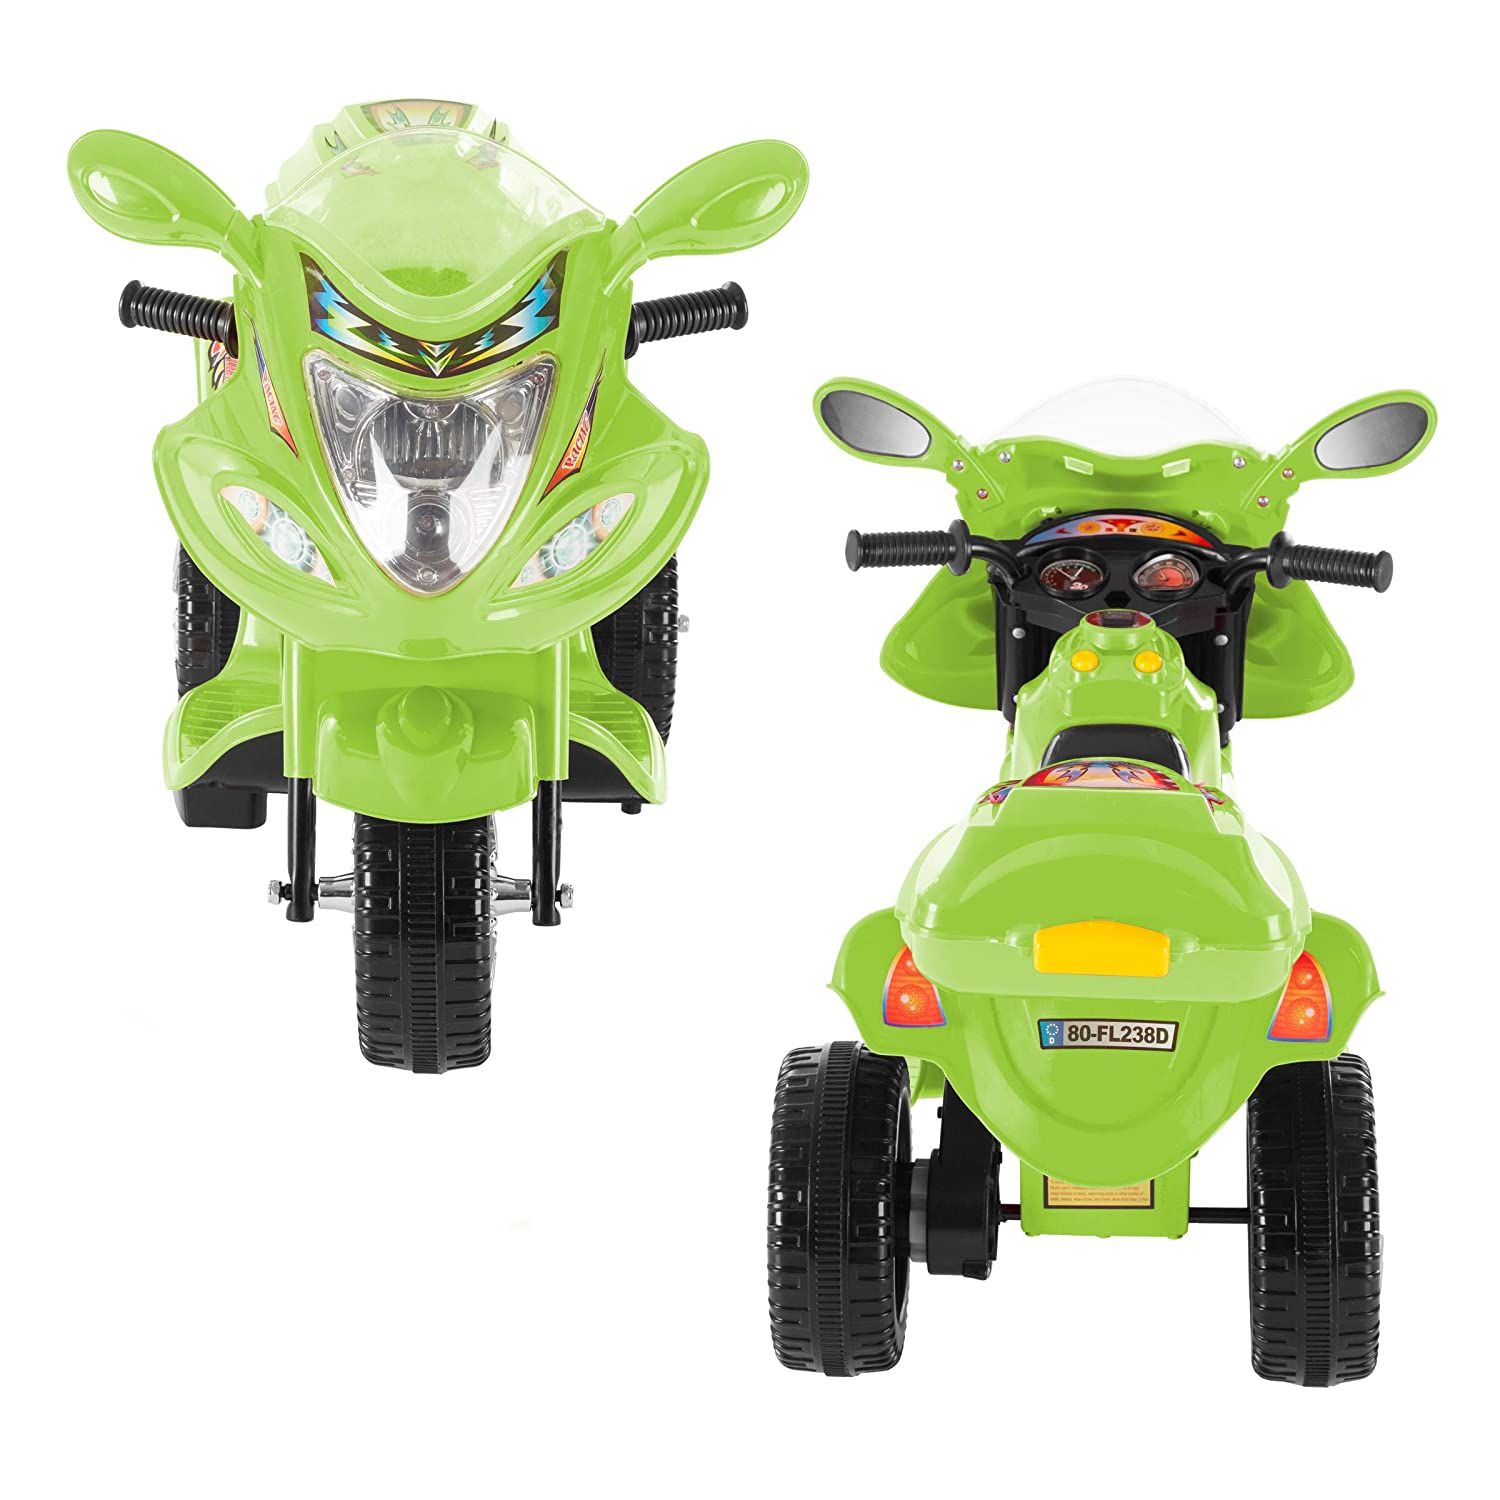 Battery Operated Electric Tricycle for Toddlers with Built-in Sound and Working Headlights Lil Rider Ride-On Toy Trike Motorcycle Green